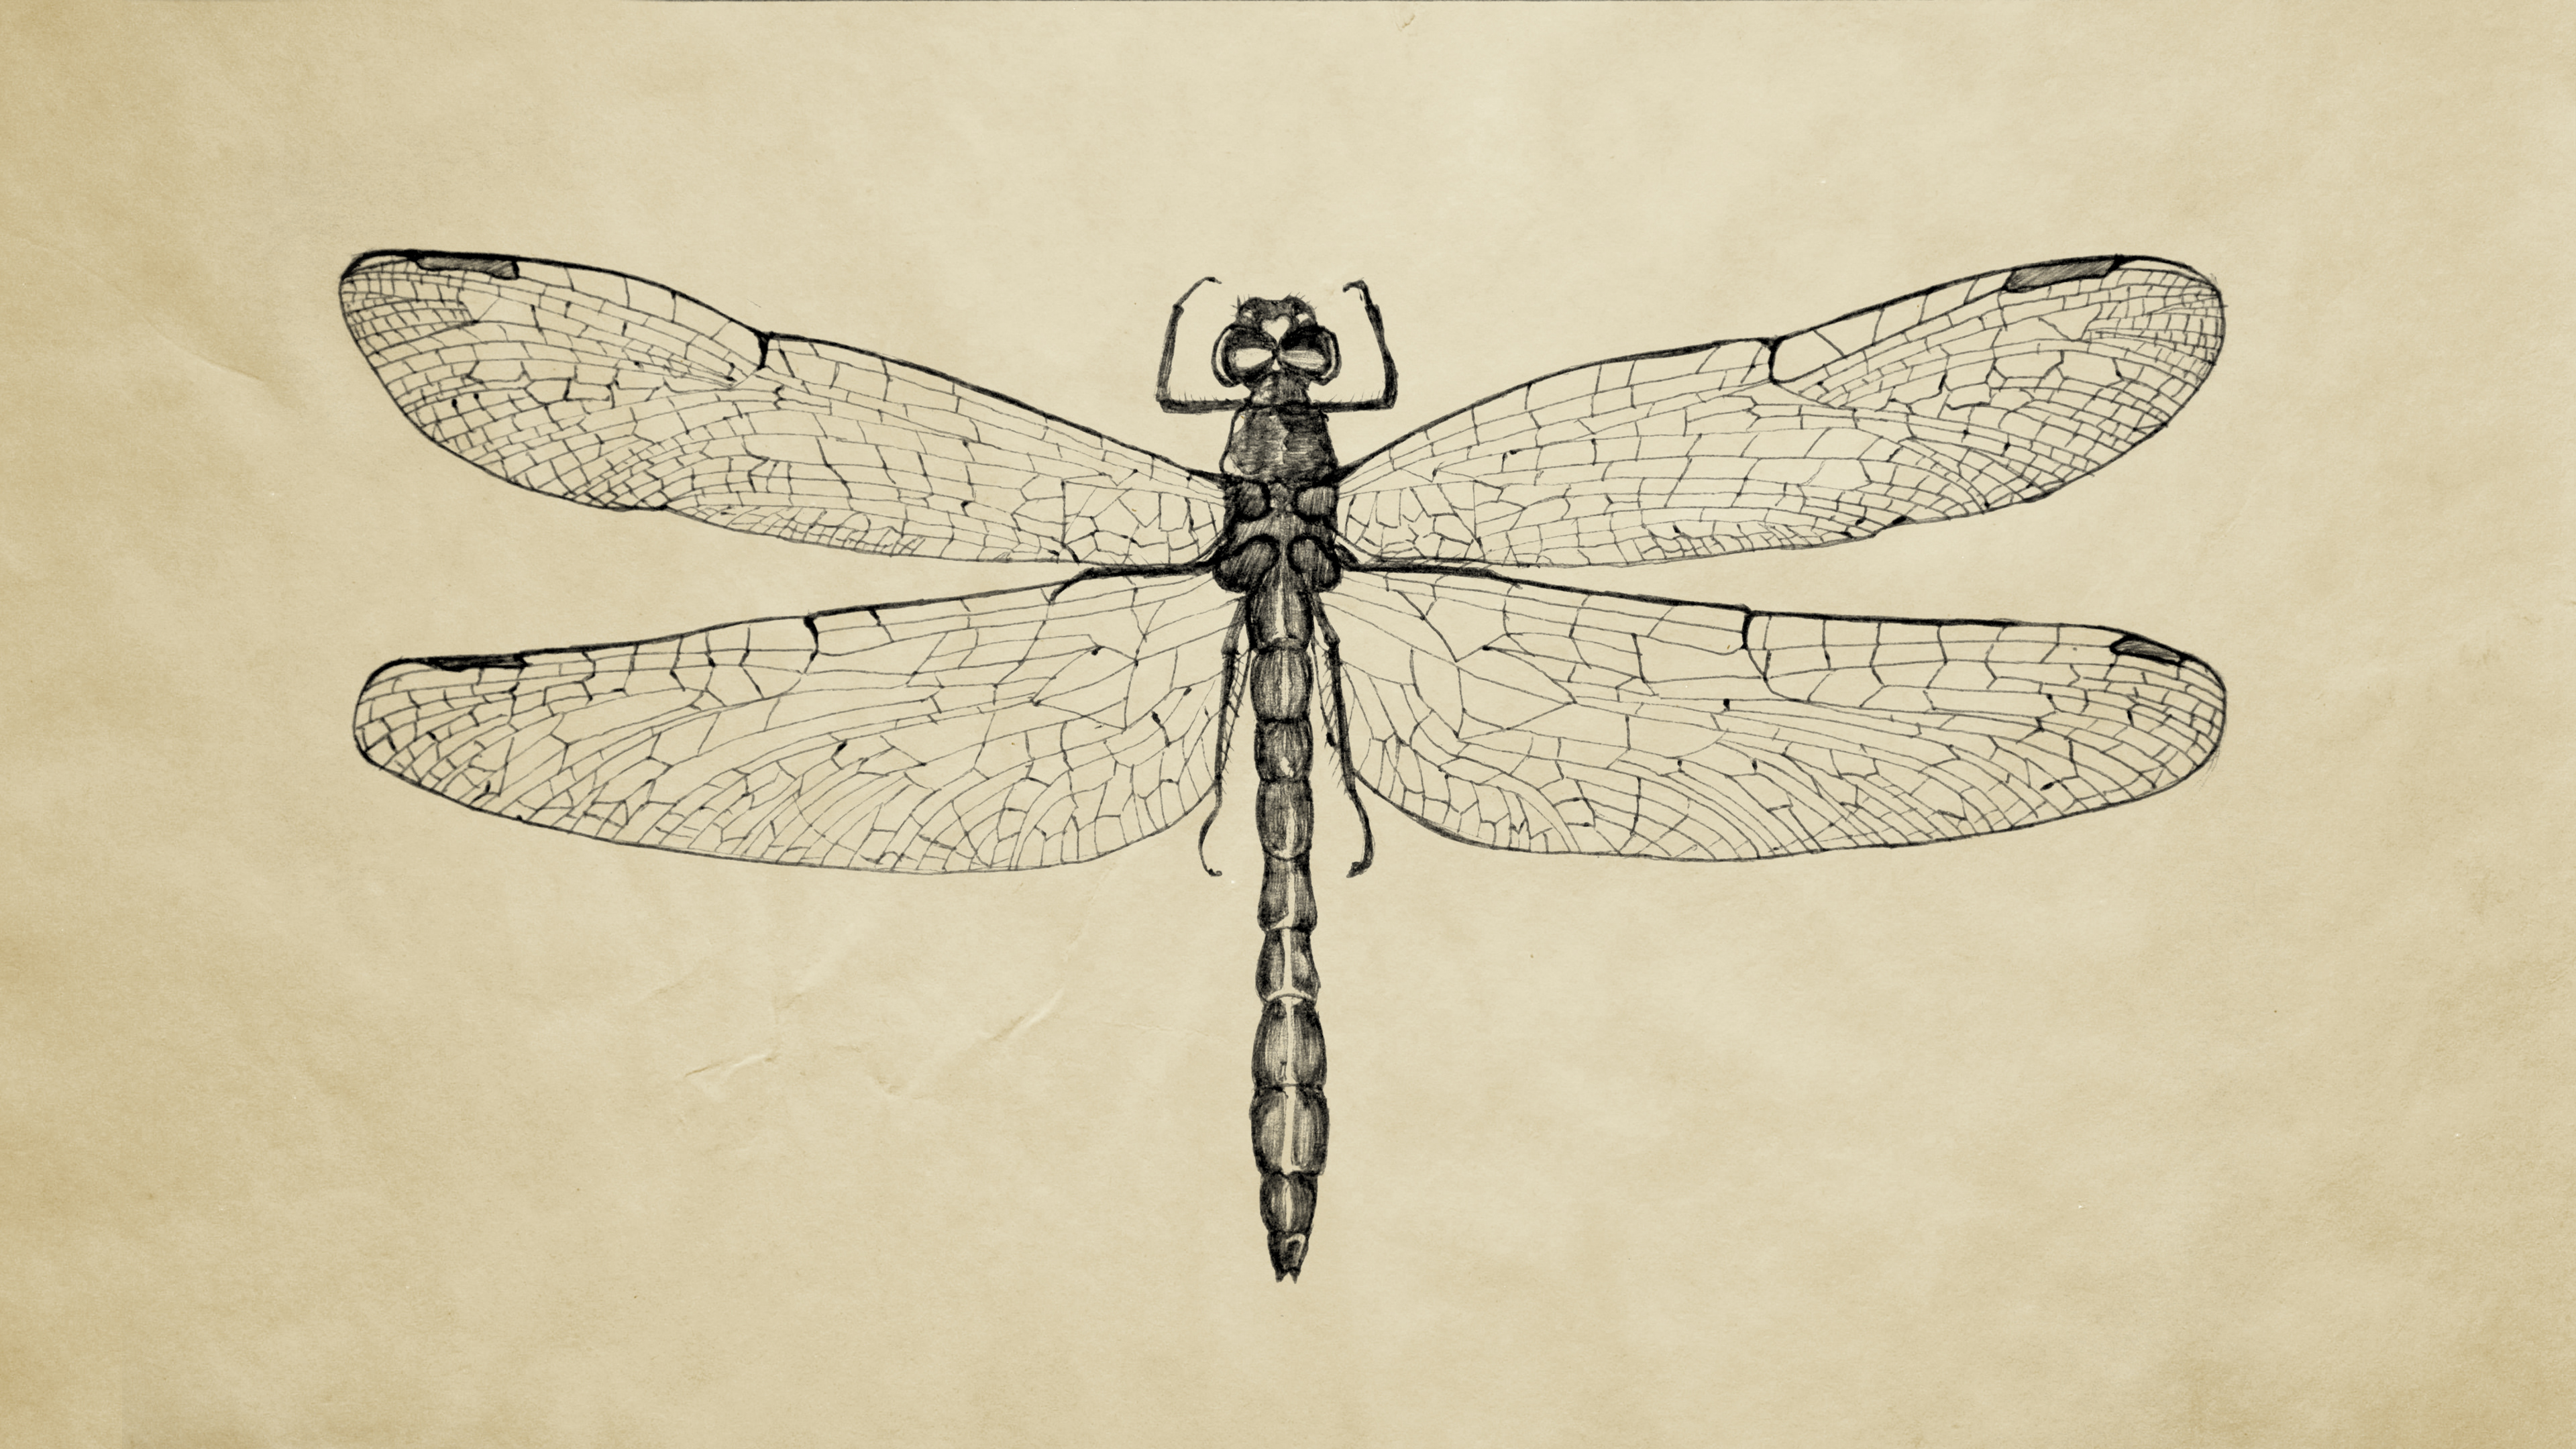 Kawika Sweeney - Insects: an illustrative study